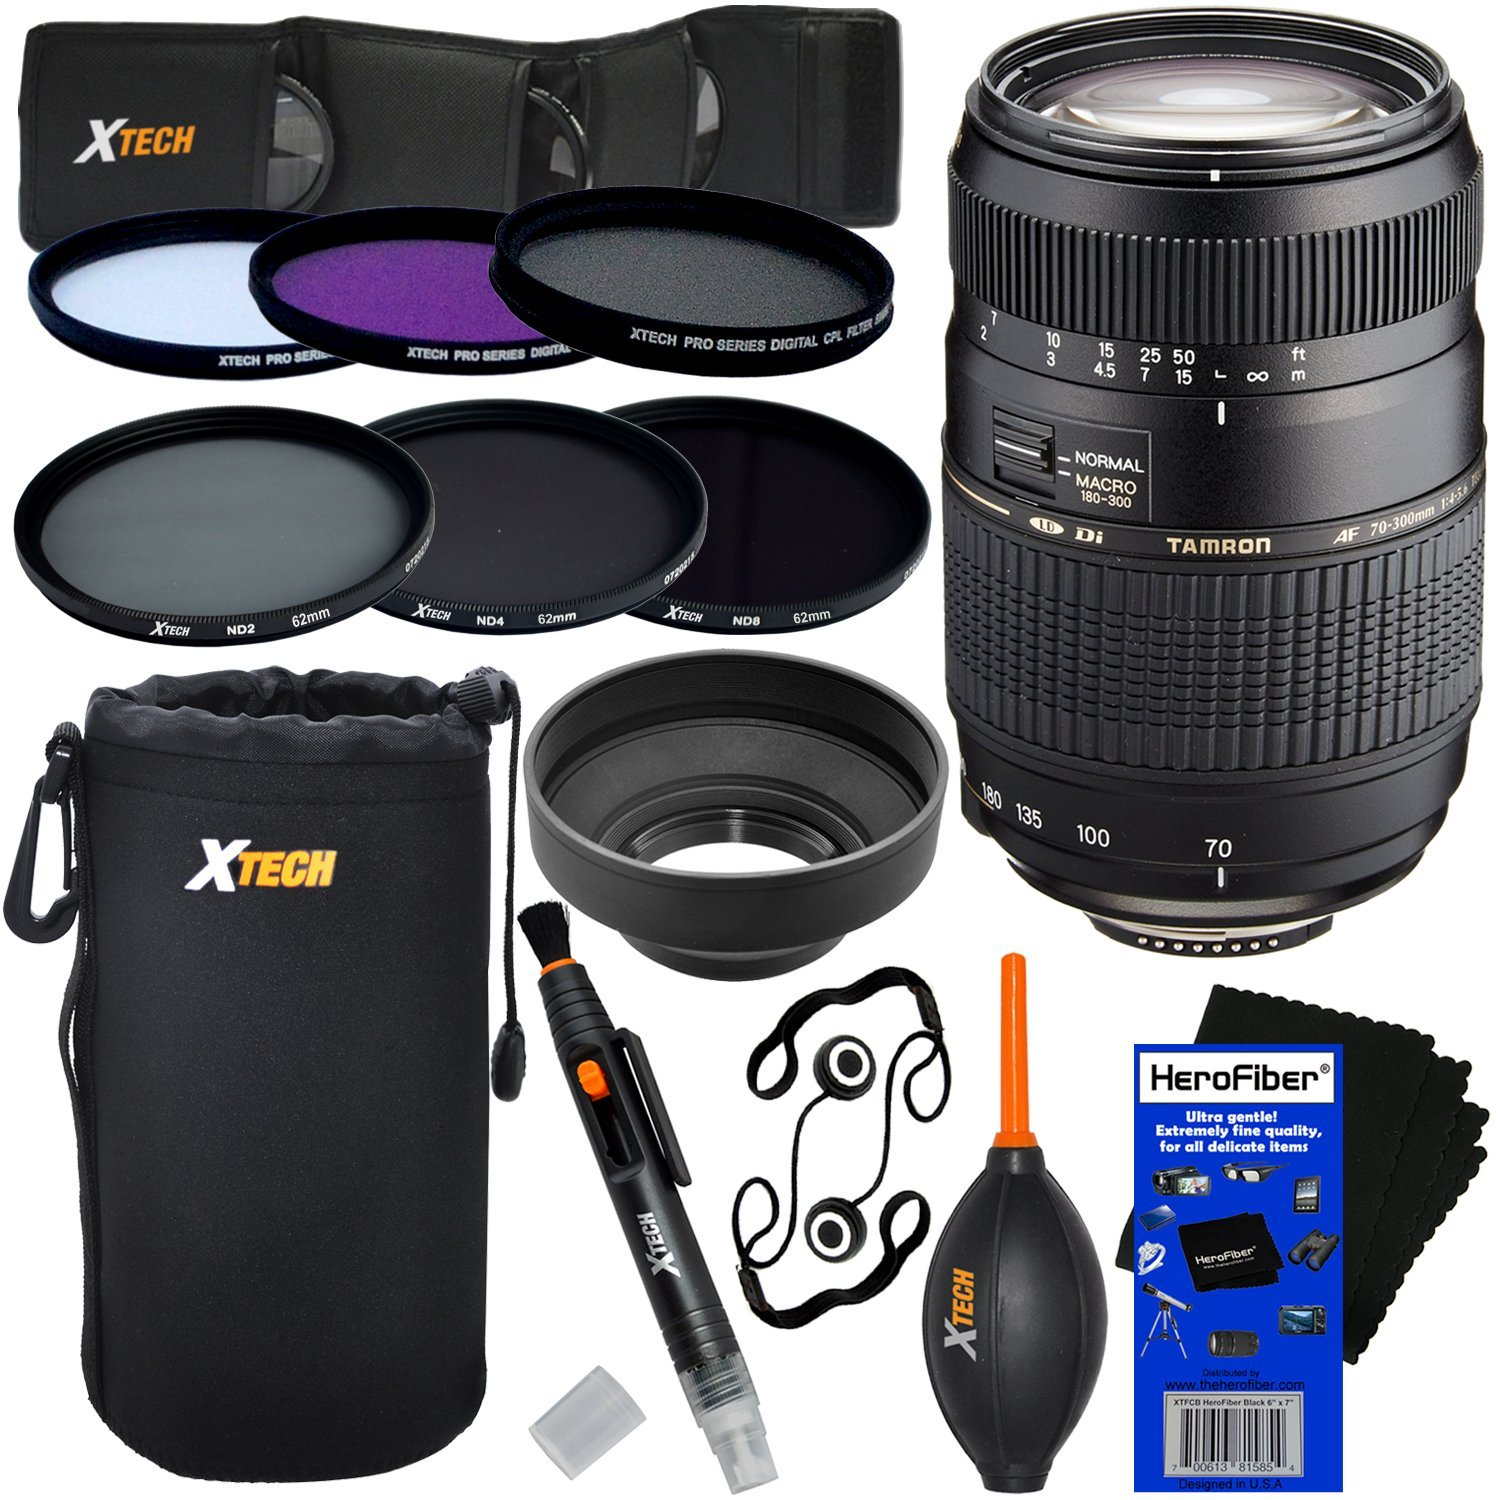 "Tamron AF 70-300mm f/4.0-5.6 Di LD Macro Zoom Lens with ""Built In Motor"" for Nikon DSLR Cameras (International Version) + ND Filters ND2, ND4, ND8 + 11pc Dlx Accessory Kit w/HeroFiber Cloth"